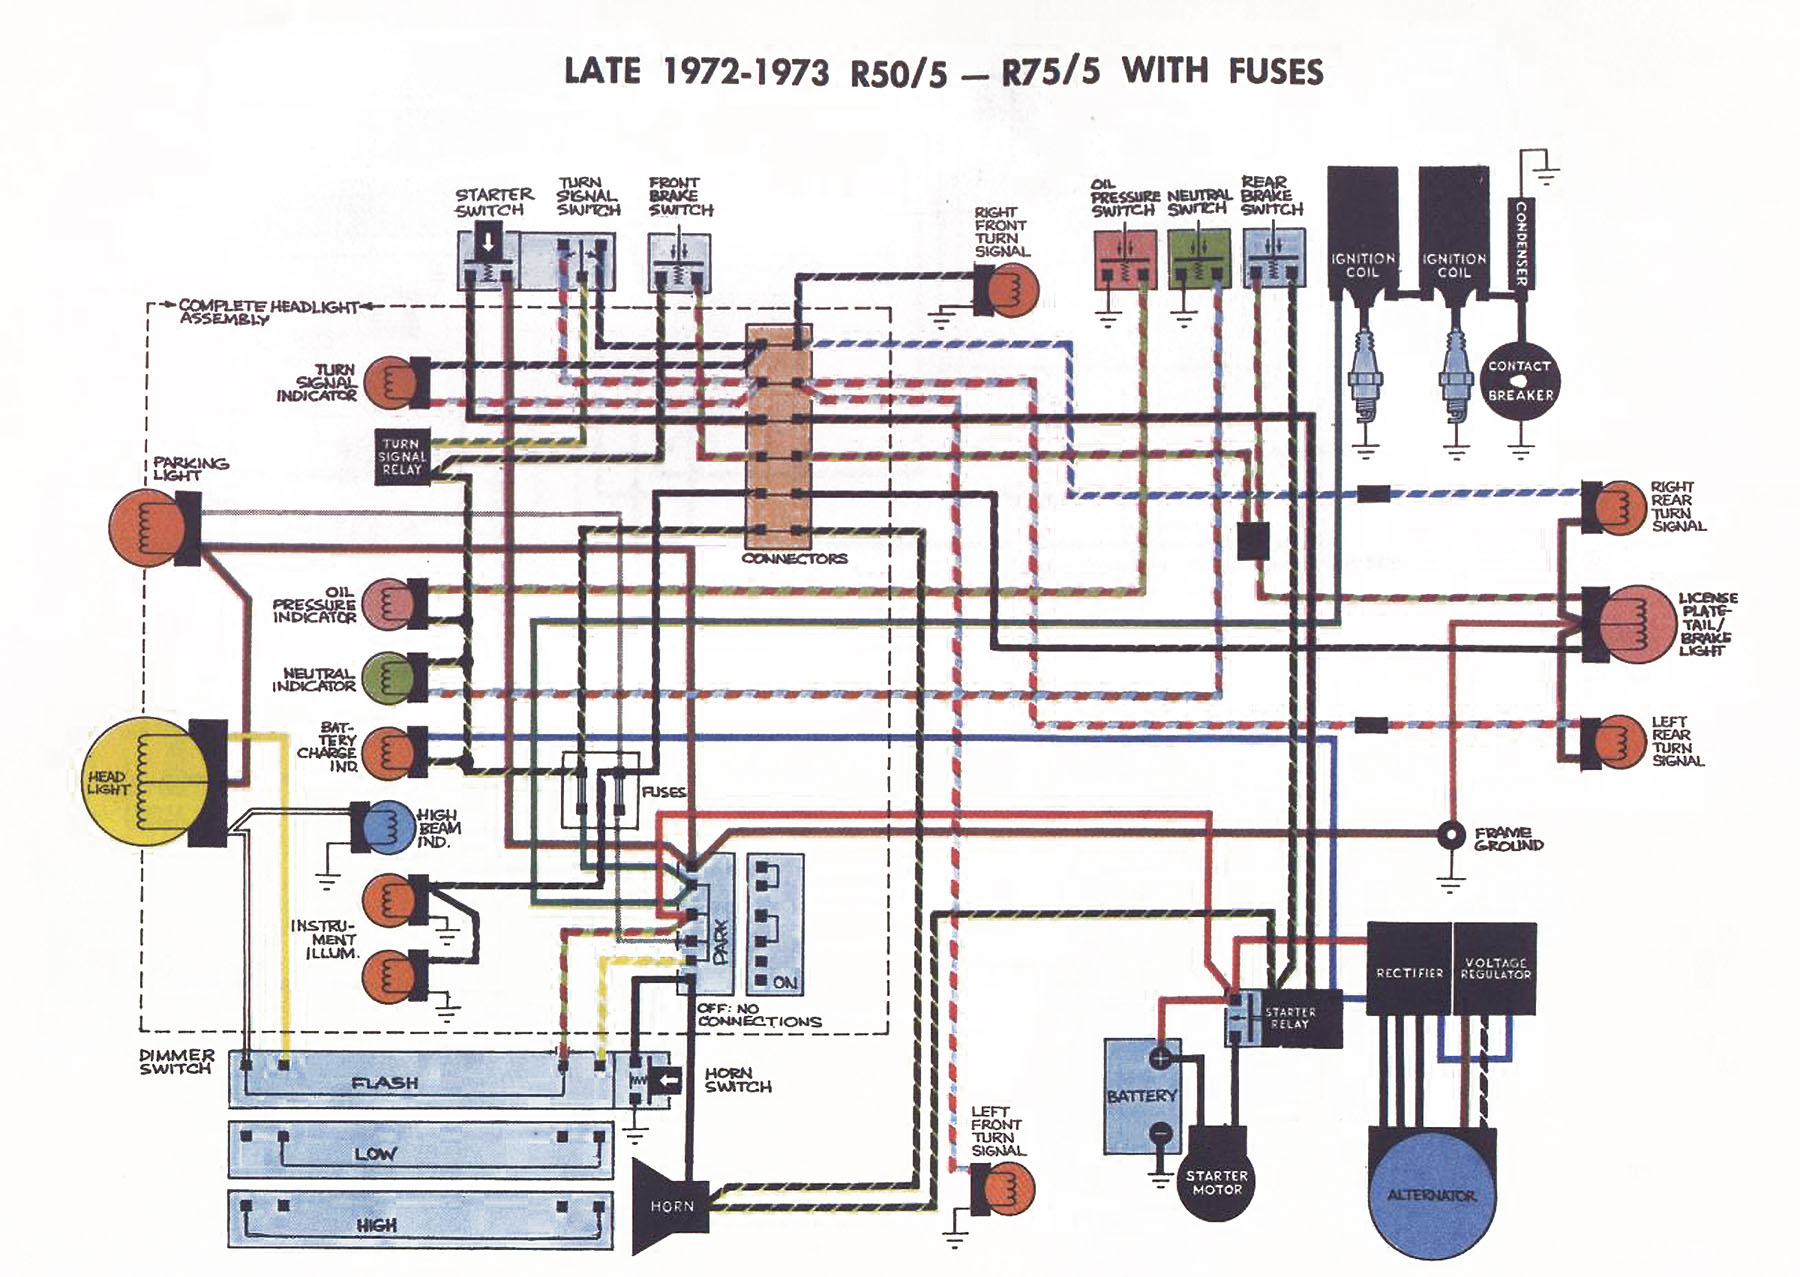 ford 6 0 fuel system diagram best wiring library 2007 328 BMW Amp Wiring Diagram e39 abs wiring diagram wiring library ford fuel system diagrams bmw 5 series wiring diagrams wiring